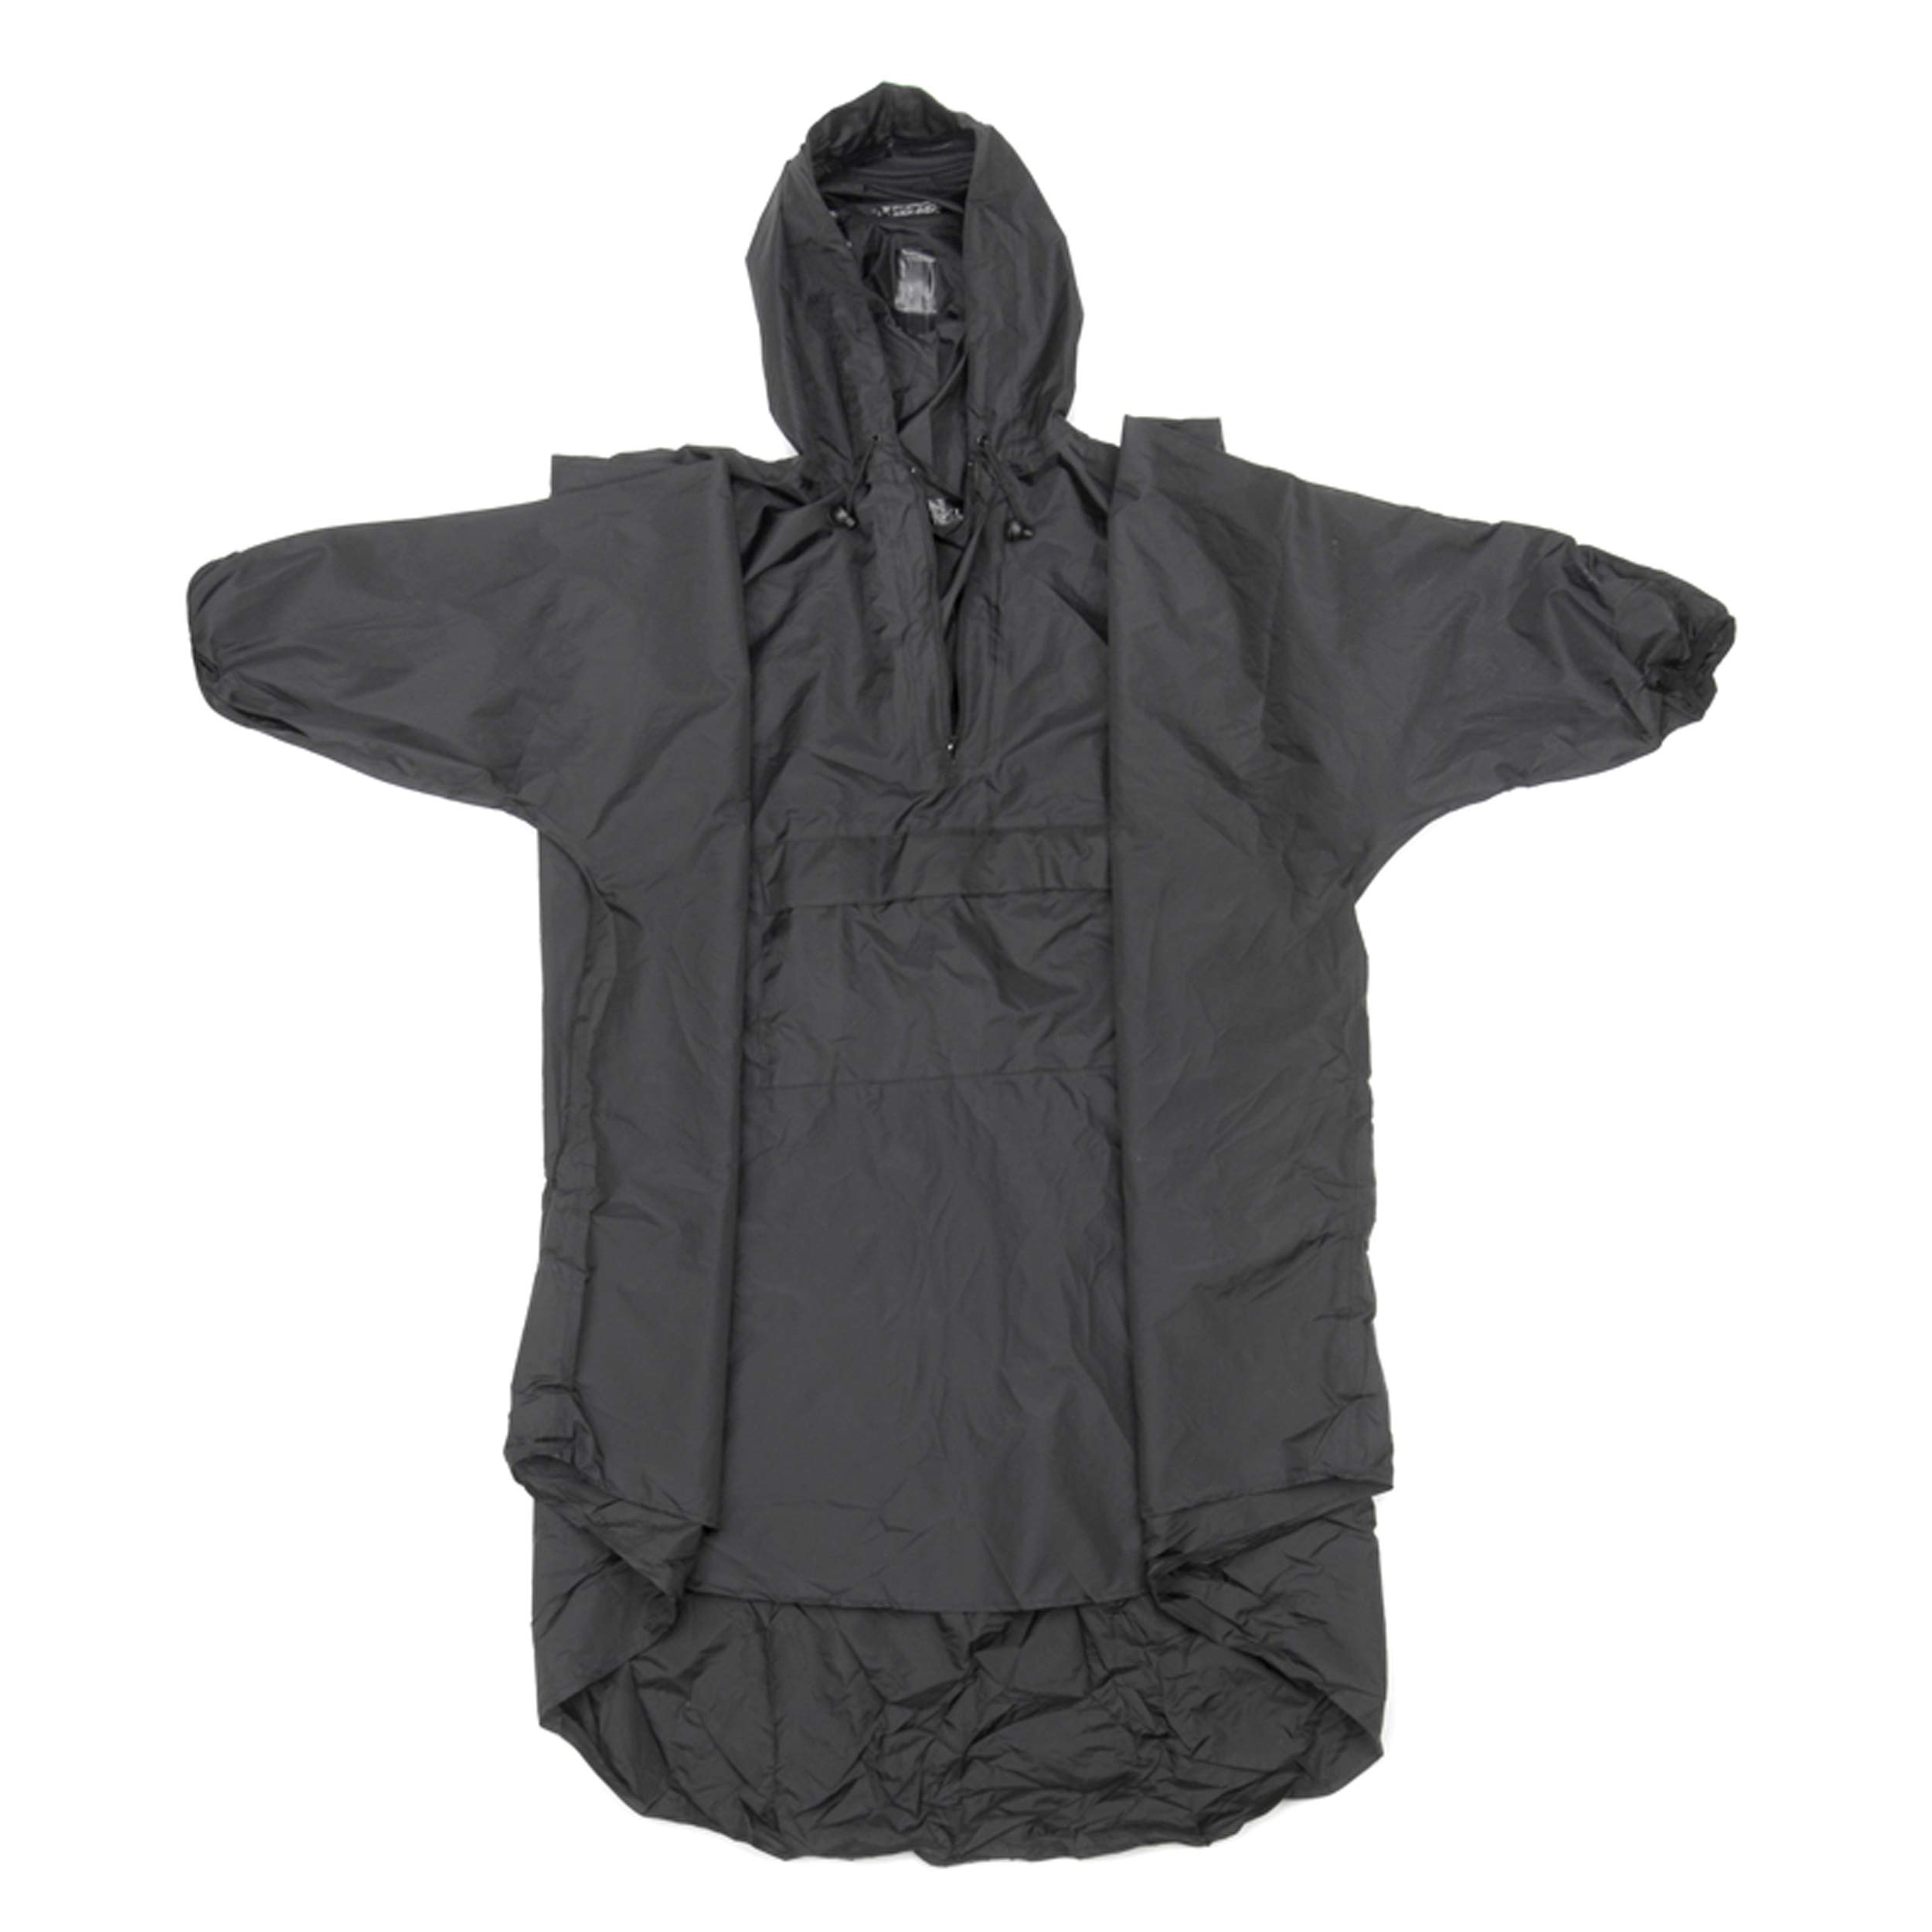 Snugpak Patrol Poncho, Waterproof, One Size, Lightweight, Suitable for Hiking, Camping, and Hunting, Black by Snugpak